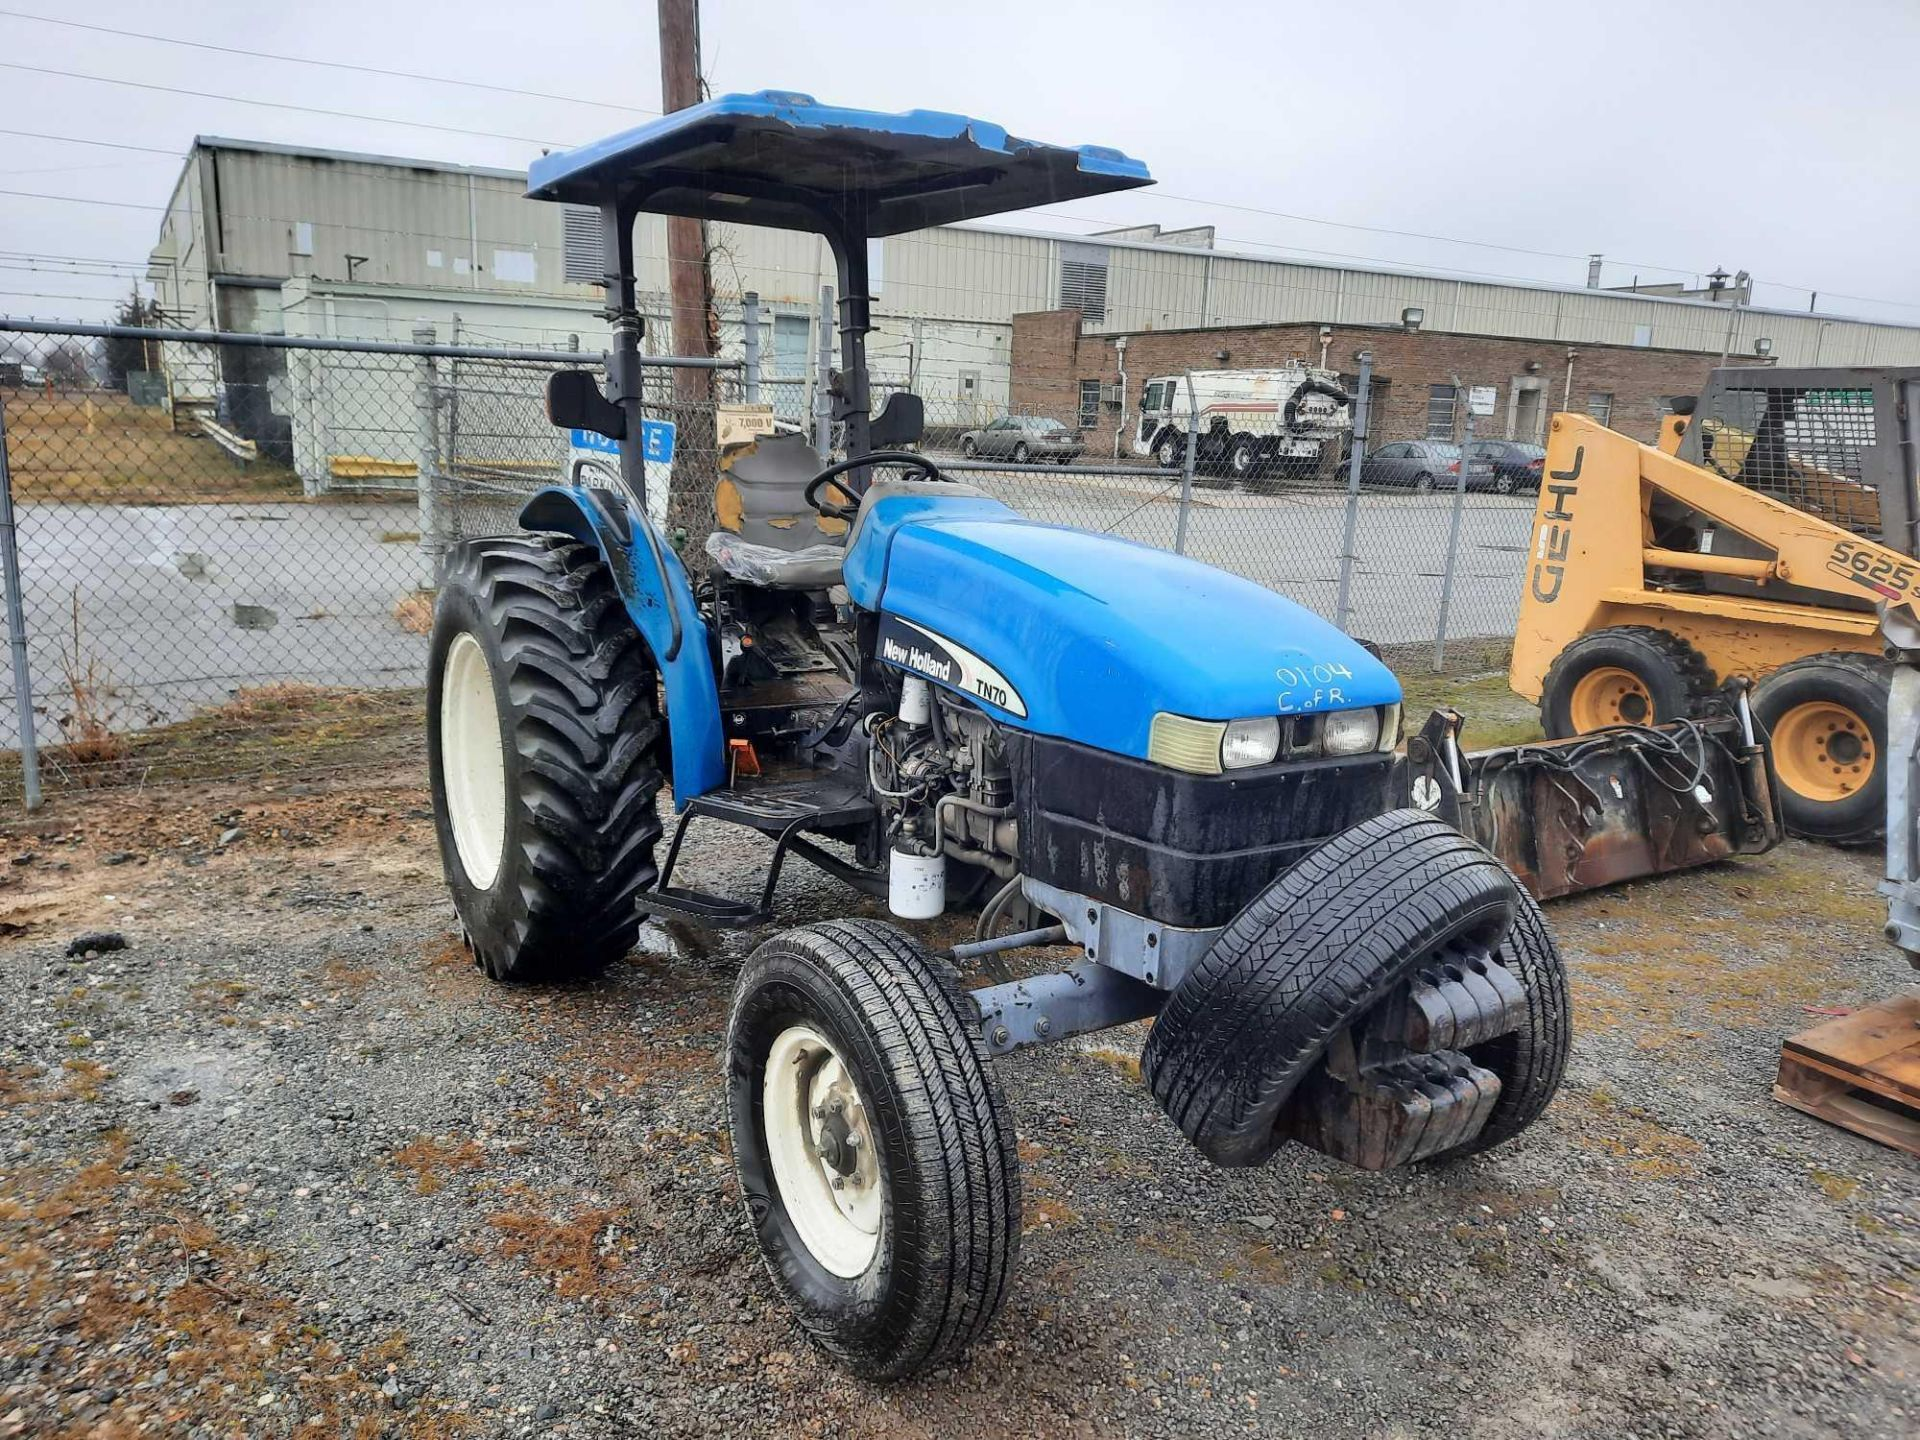 200 NEW HOLLAND TN70 TRACTOR - Image 4 of 4